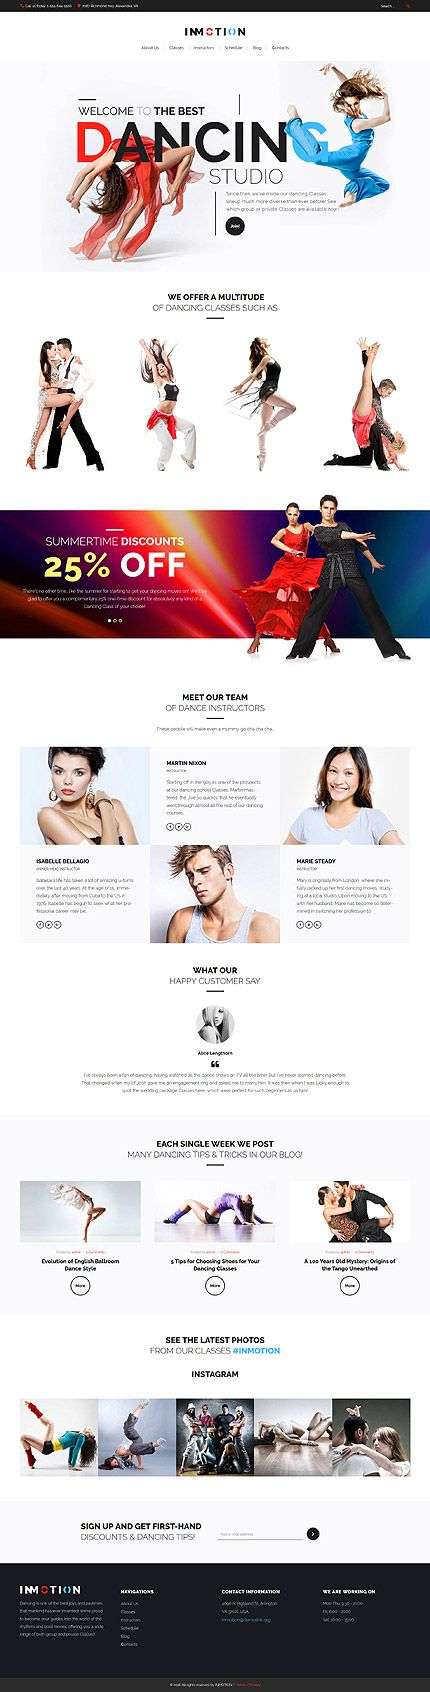 Best City Dancing Studio #Wordpress #template. #themes #business #responsive #Wordpressthemes